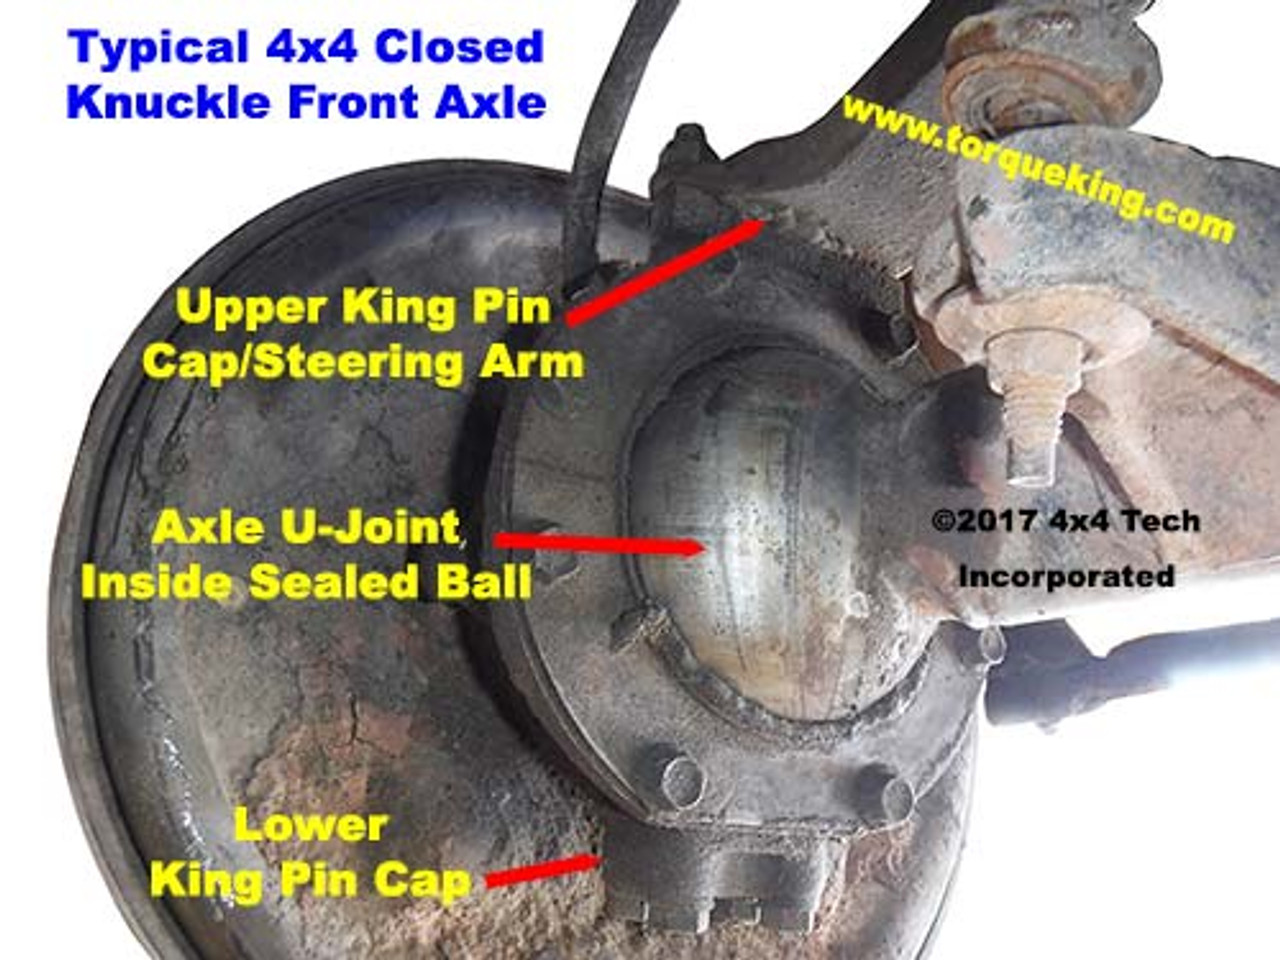 The Difference Between Closed & Open Knuckle 4x4 Front